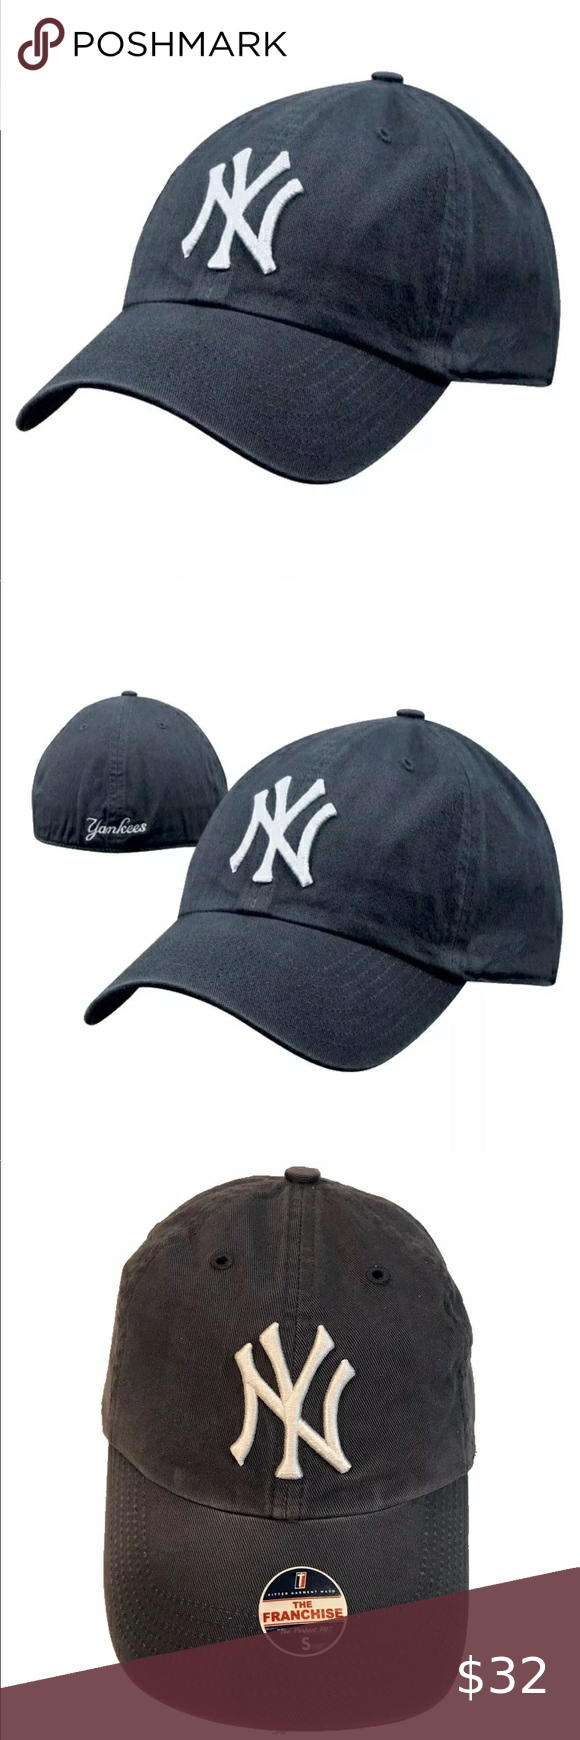 Boston Red Sox Twins Franchise Fitted Cap Hat M New York Yankees Original Twins 47 Brand Franchise Relaxed Fitted Cap Medium Fitted Caps Caps Hats Ny Yankees